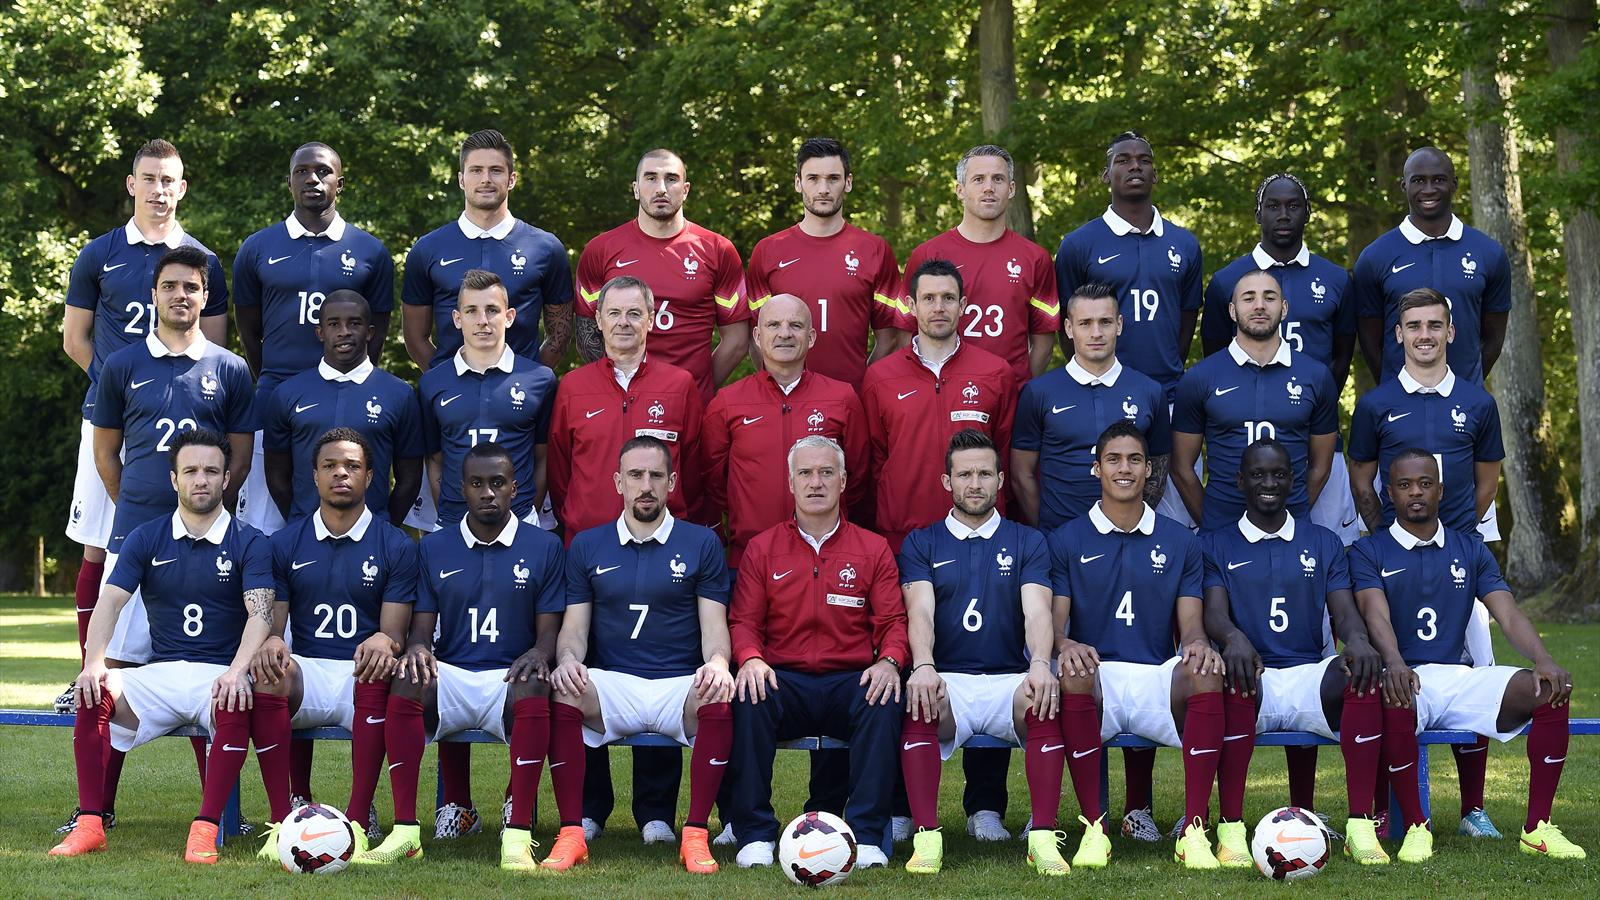 La photo officielle des bleus pour la coupe du monde coupe du monde 2014 football eurosport - Coupe de france 2014 foot ...